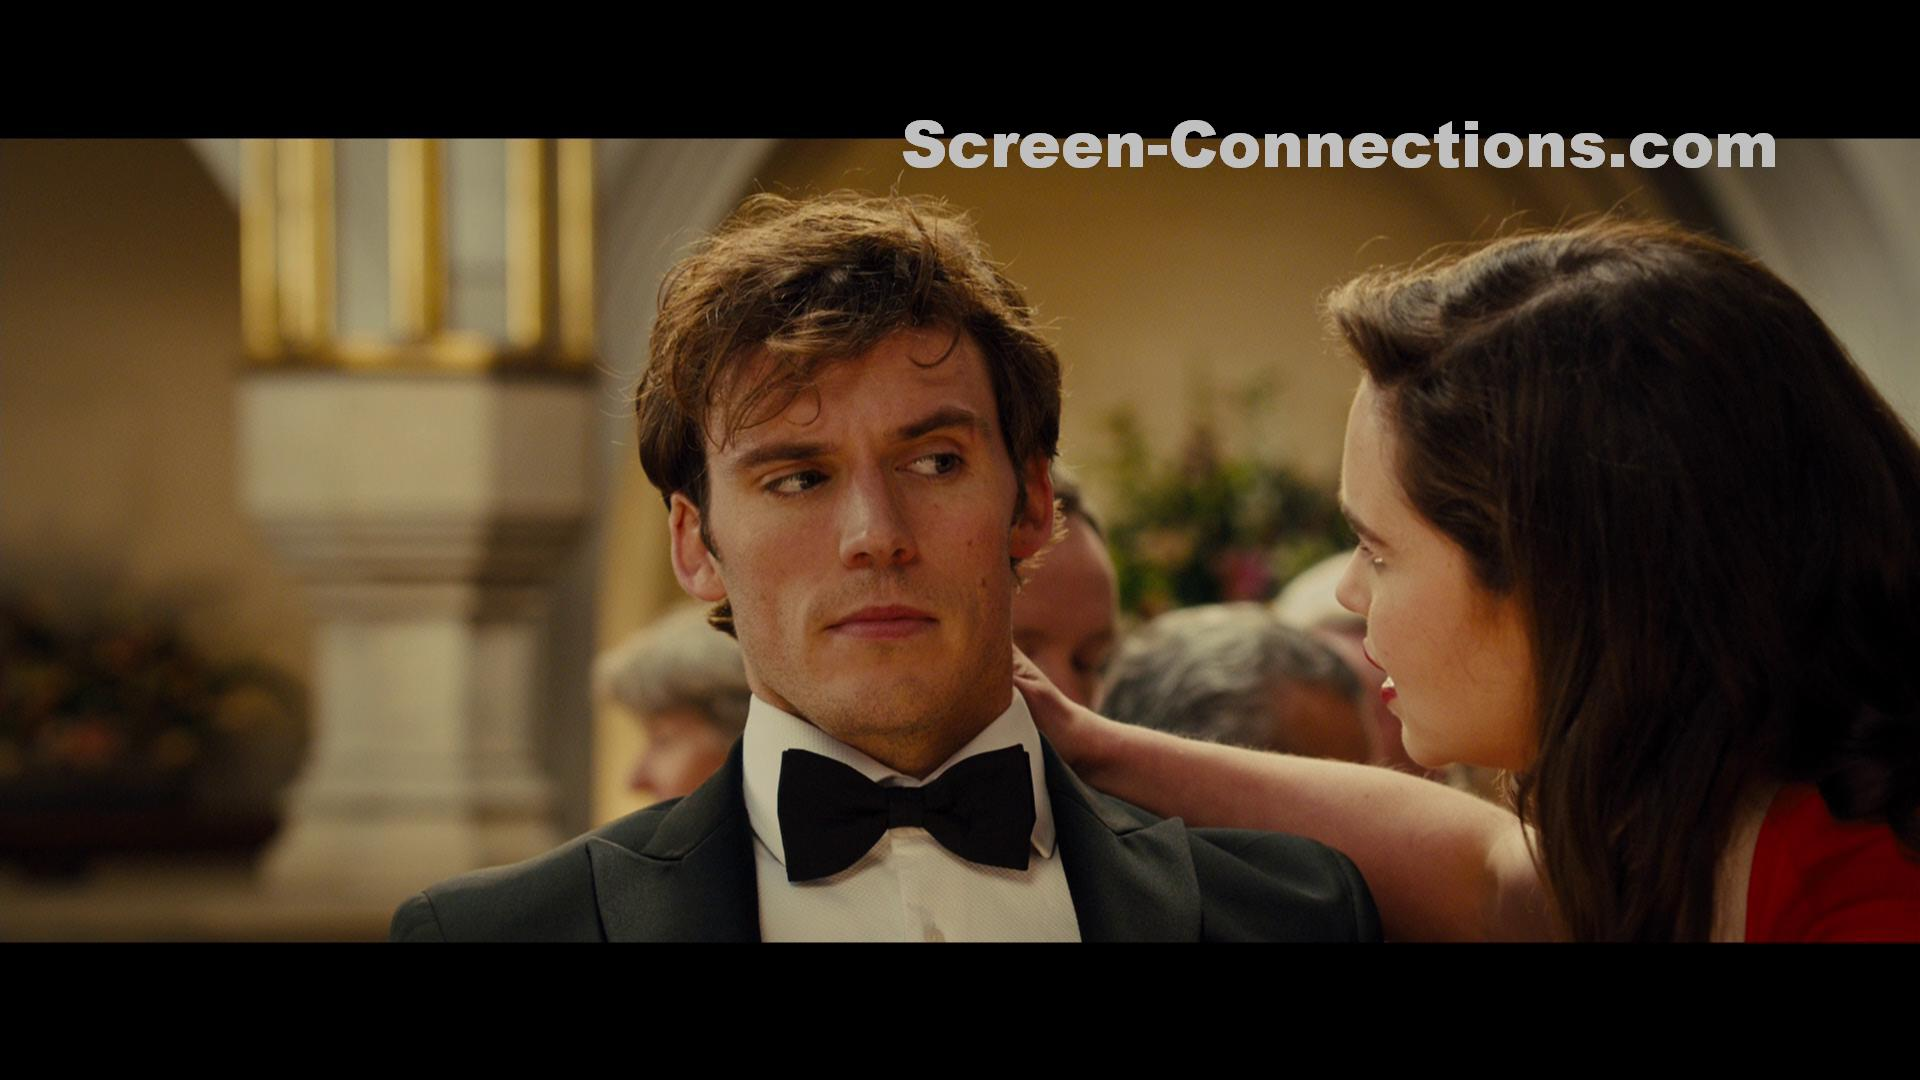 Me Before You Blu Ray Image 04 Screen Connections